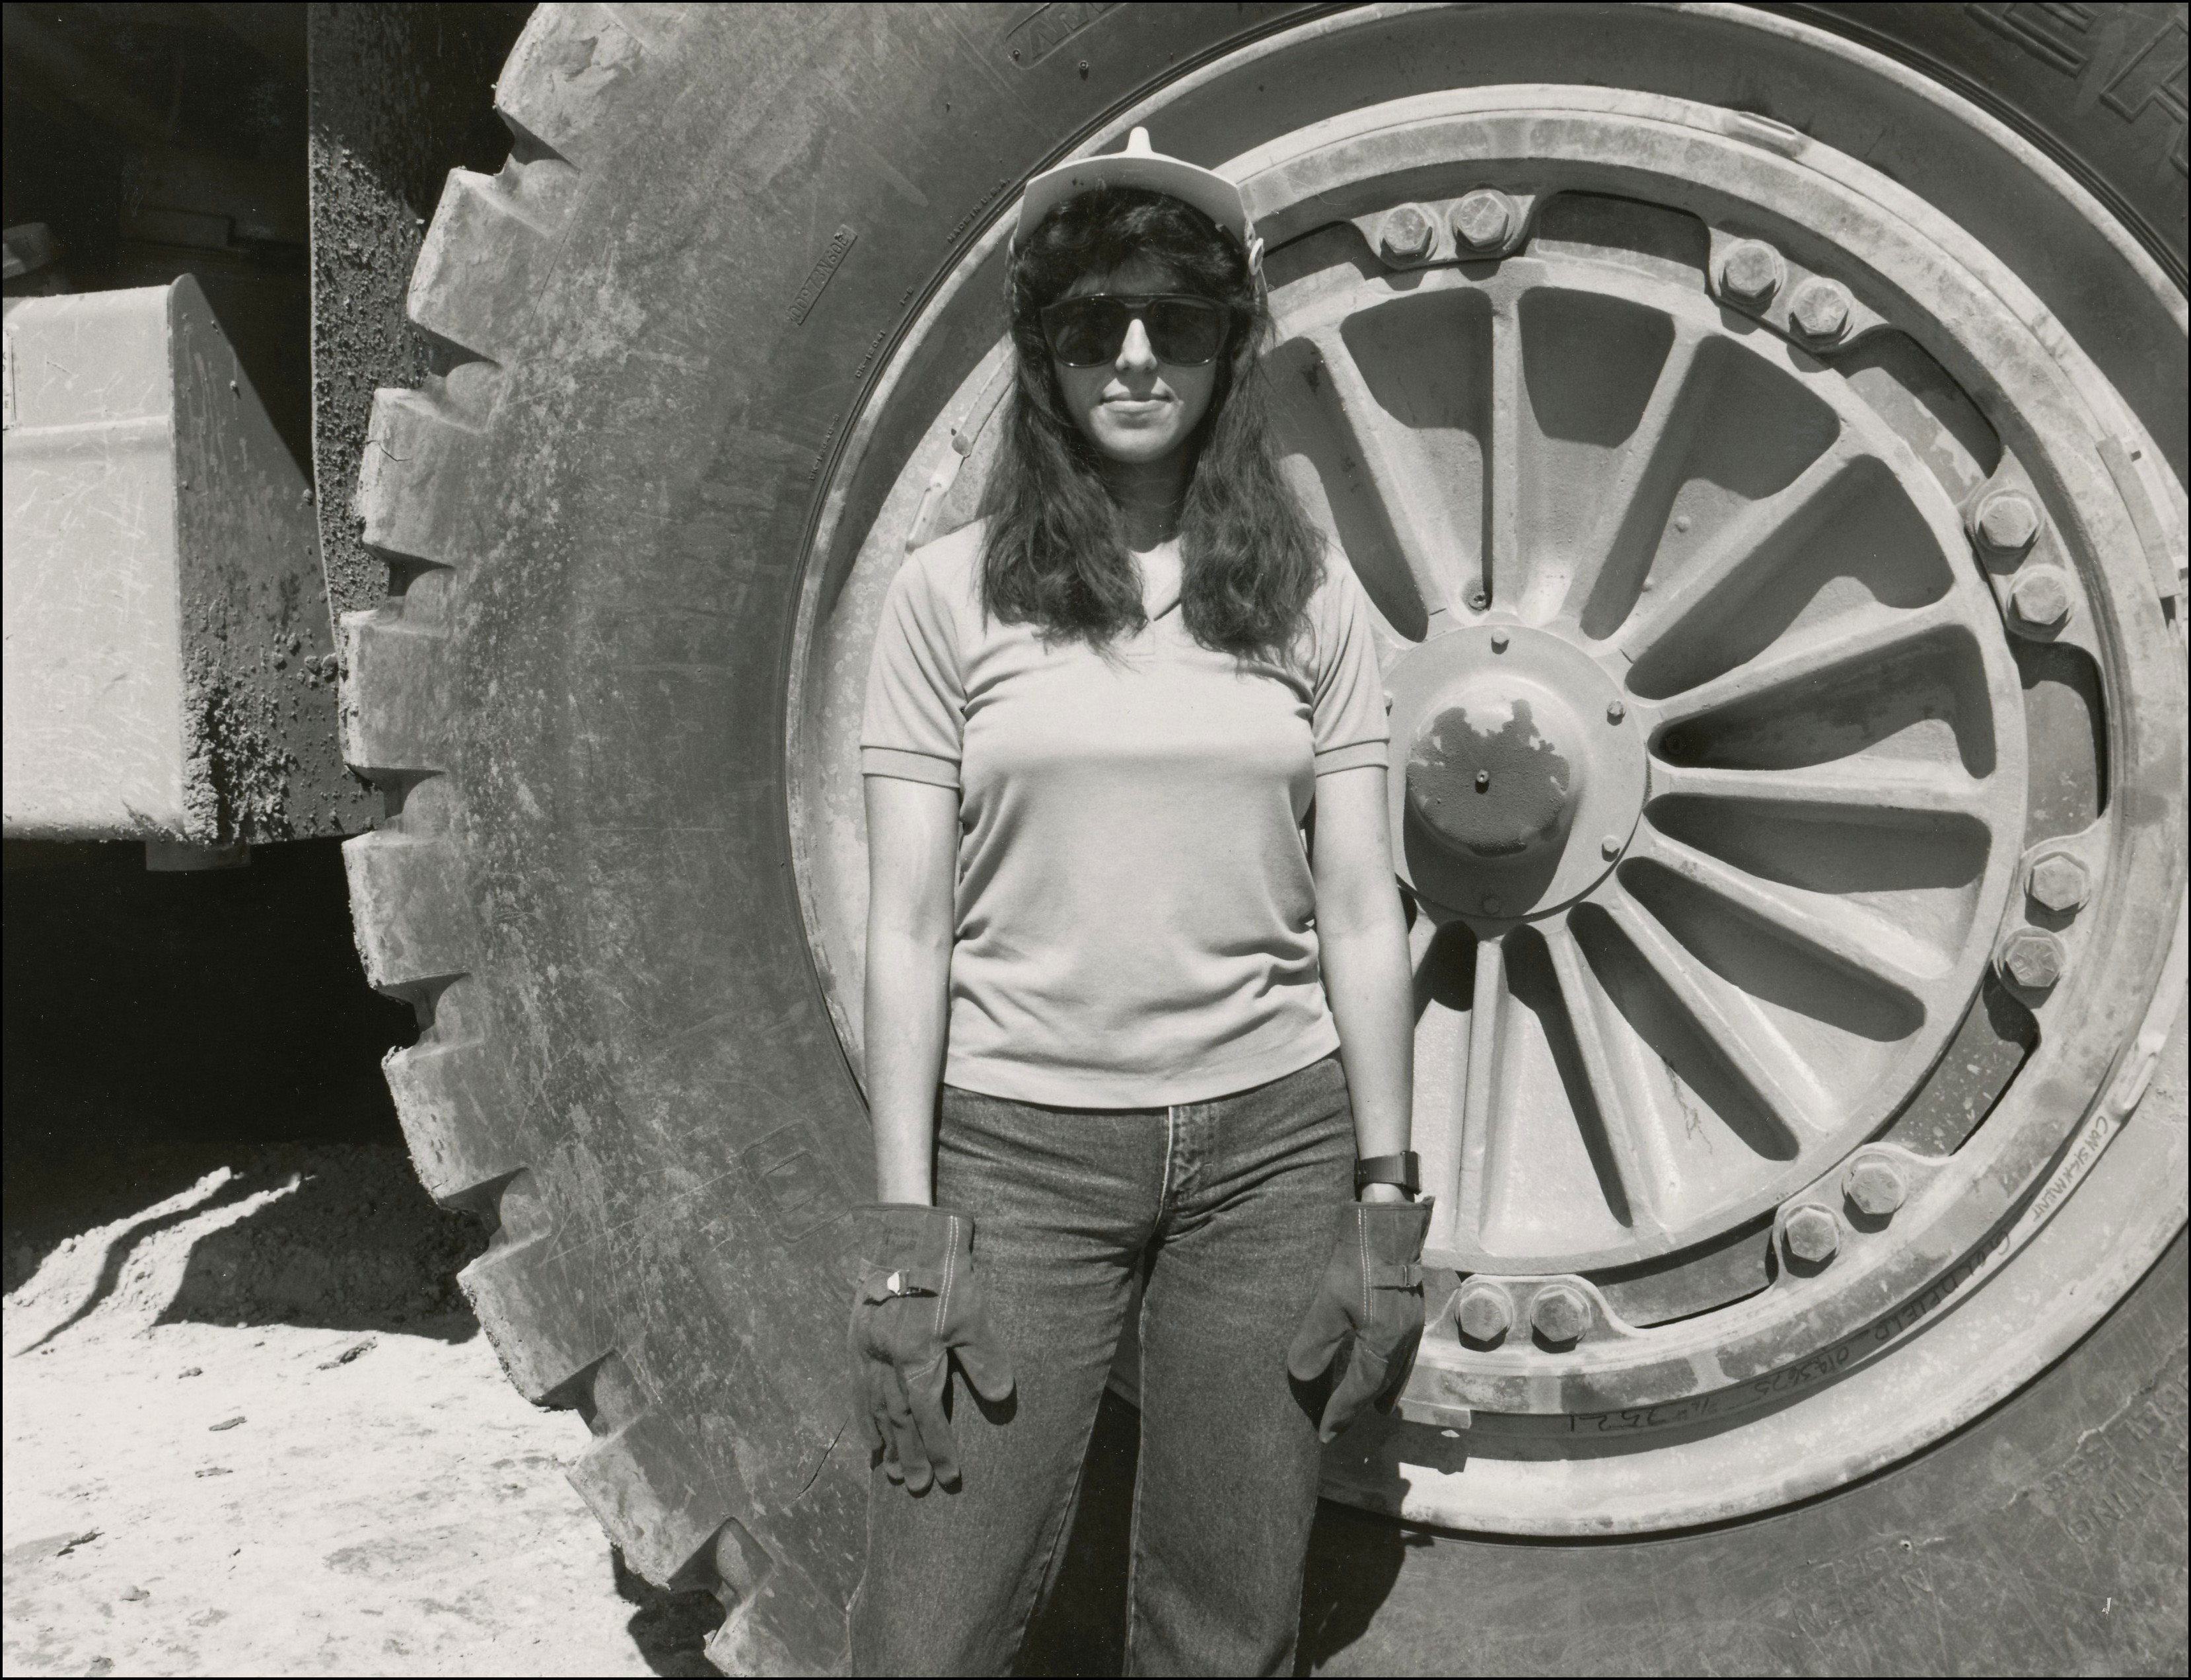 Miner woman standing in front of a very large tire on a piece of construction equipment